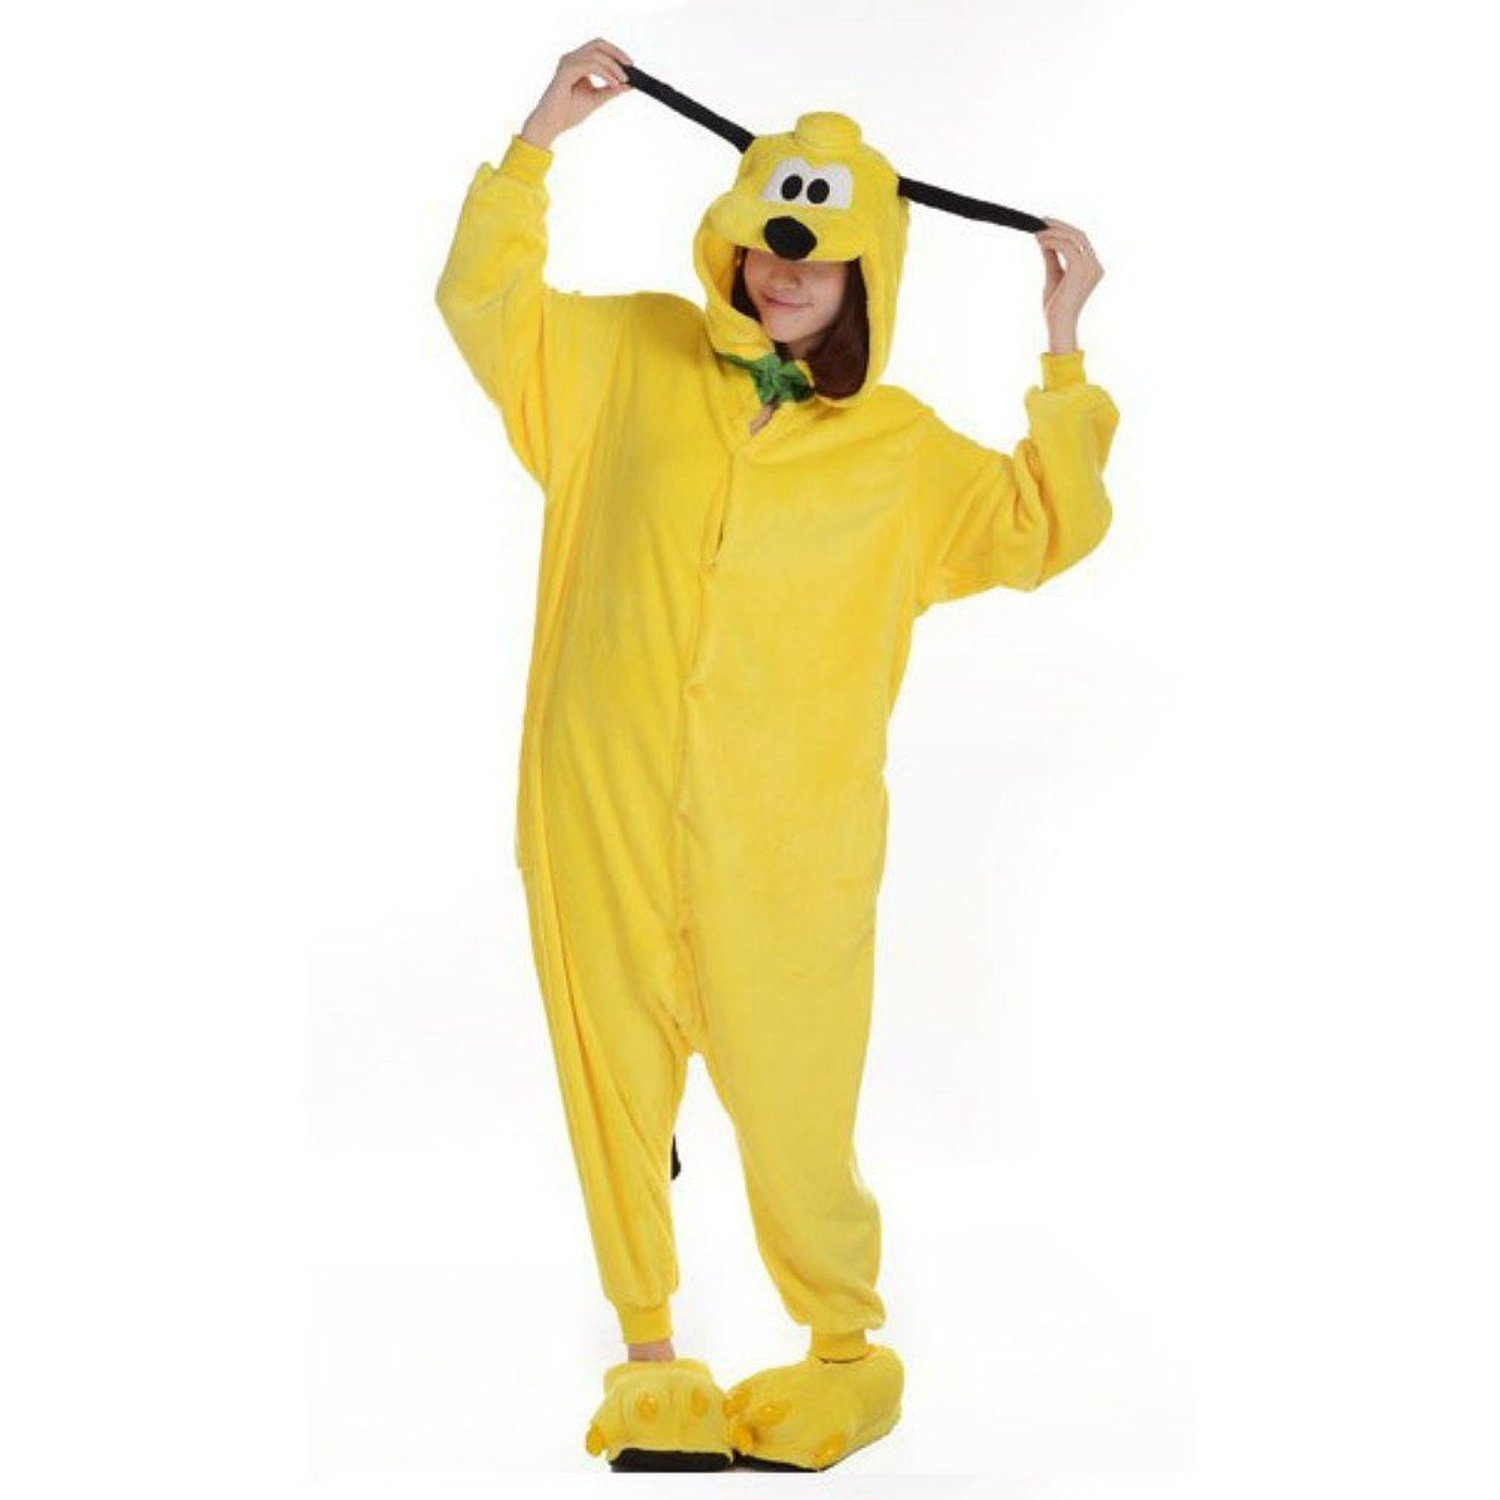 Pluto Dog Kigurumi Costume,Unisex Adult Pyjamas